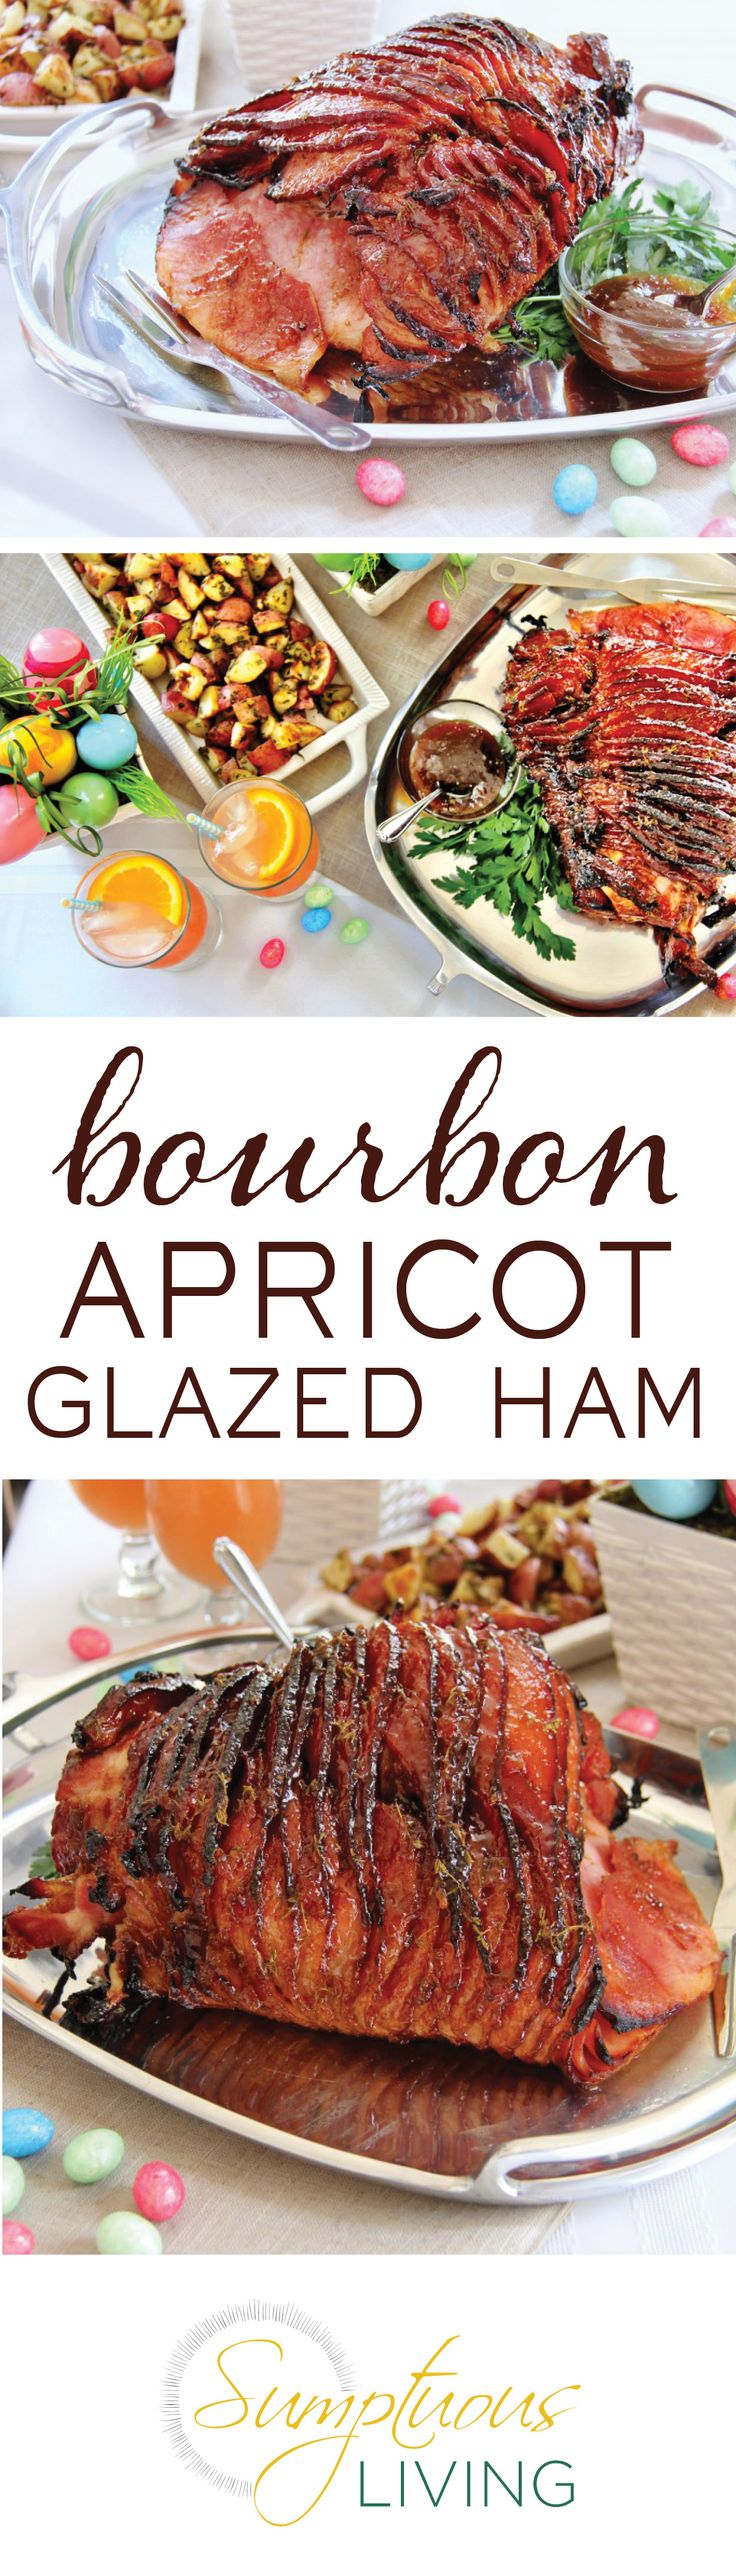 Jazz up your Easter menu with our Bourbon Apricot Glazed Ham! A spiral sliced ham basted with a mixture of apricot jam, bourbon, and spices for a delicious twist on a holiday classic. | Sumptuous Living | https://sumptuousliving.net/bourbon-glazed-ham/